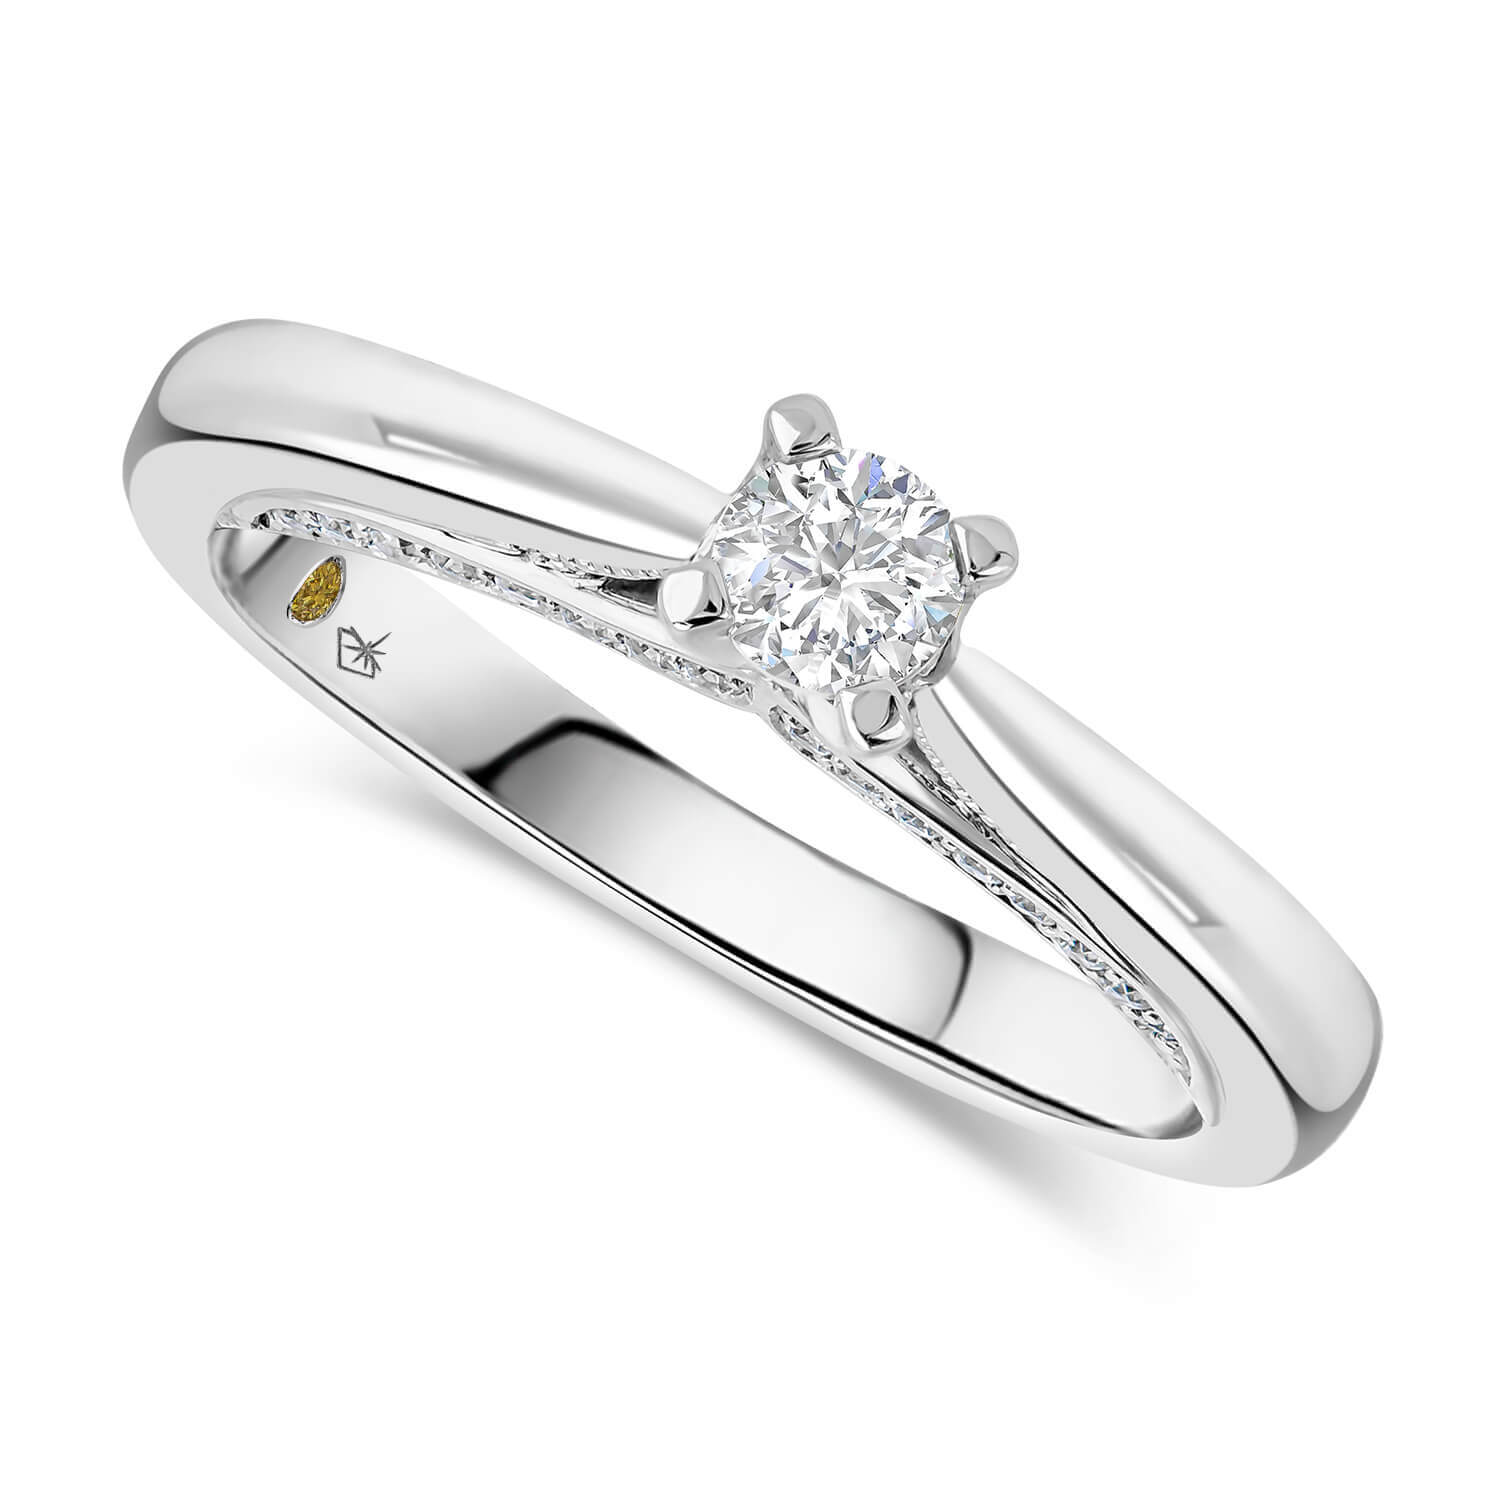 Northern Star 0.37ct Diamond 18ct White Gold Sides Ring